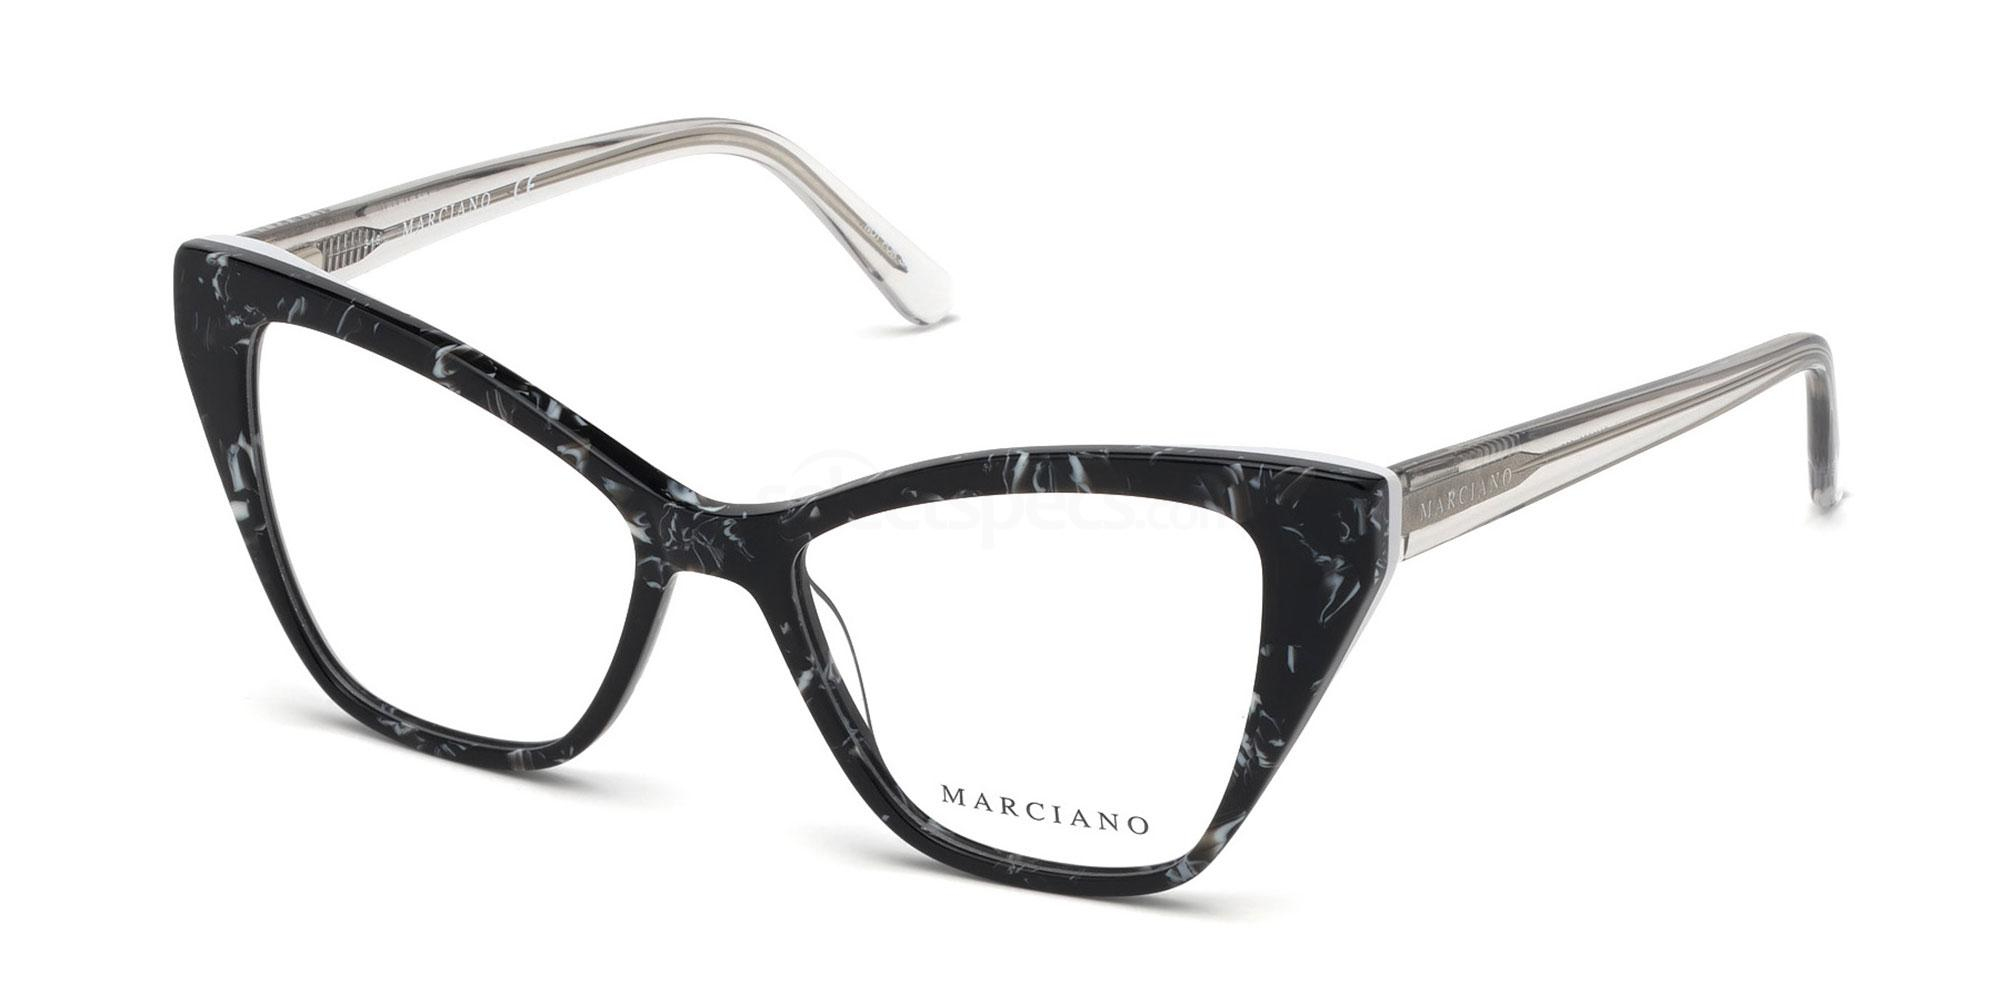 005 GM0328 Glasses, Guess by Marciano